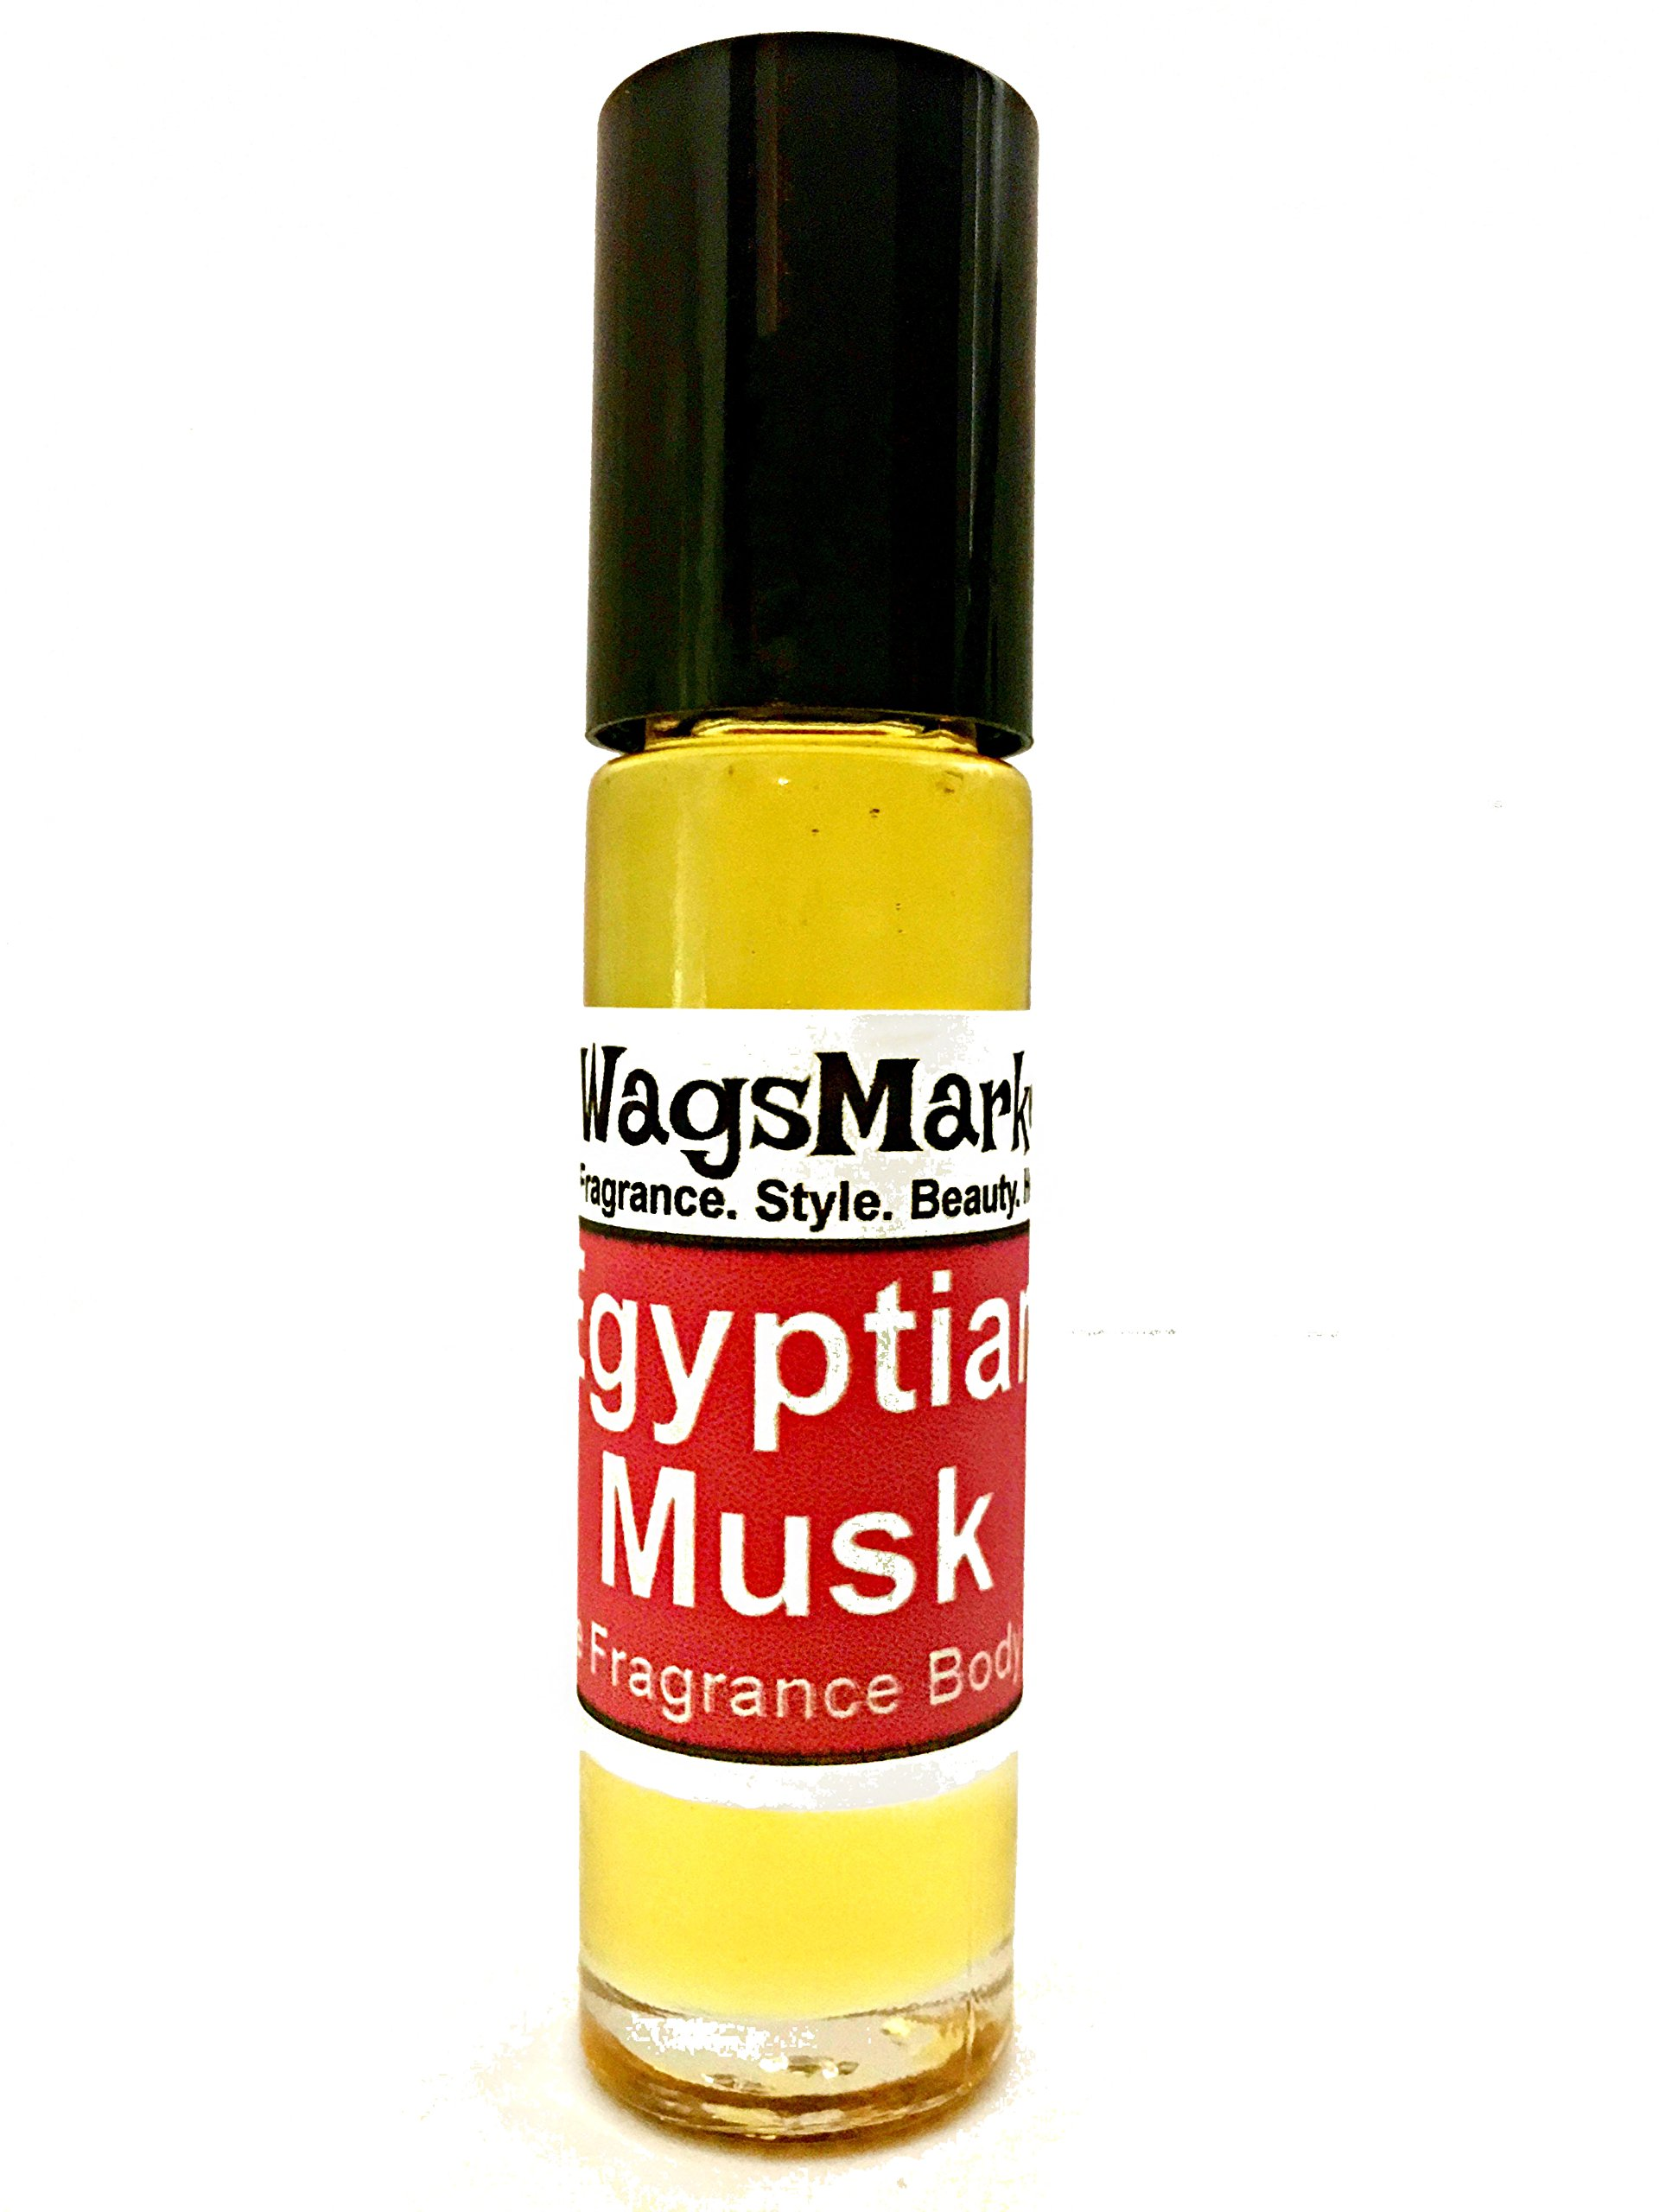 Egyptian Musk Oil, Choose from Roll On to 0.33oz - 4oz Glass Bottle, by WagsMarket™ (0.33oz Roll On)